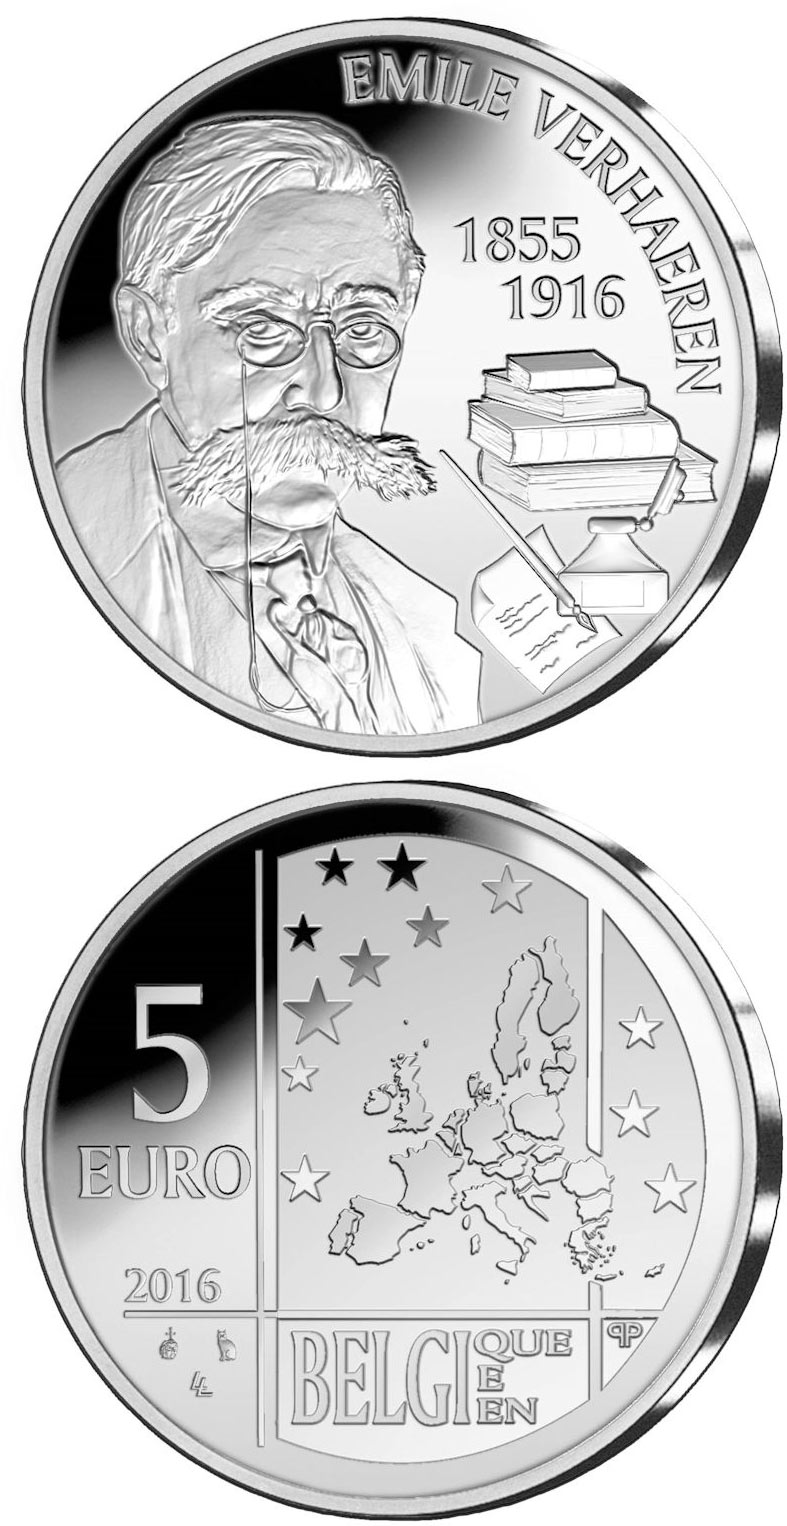 Image of a coin 5 euro | Belgium | 100th Anniversary of the Death of Emile Verhaeren | 2016